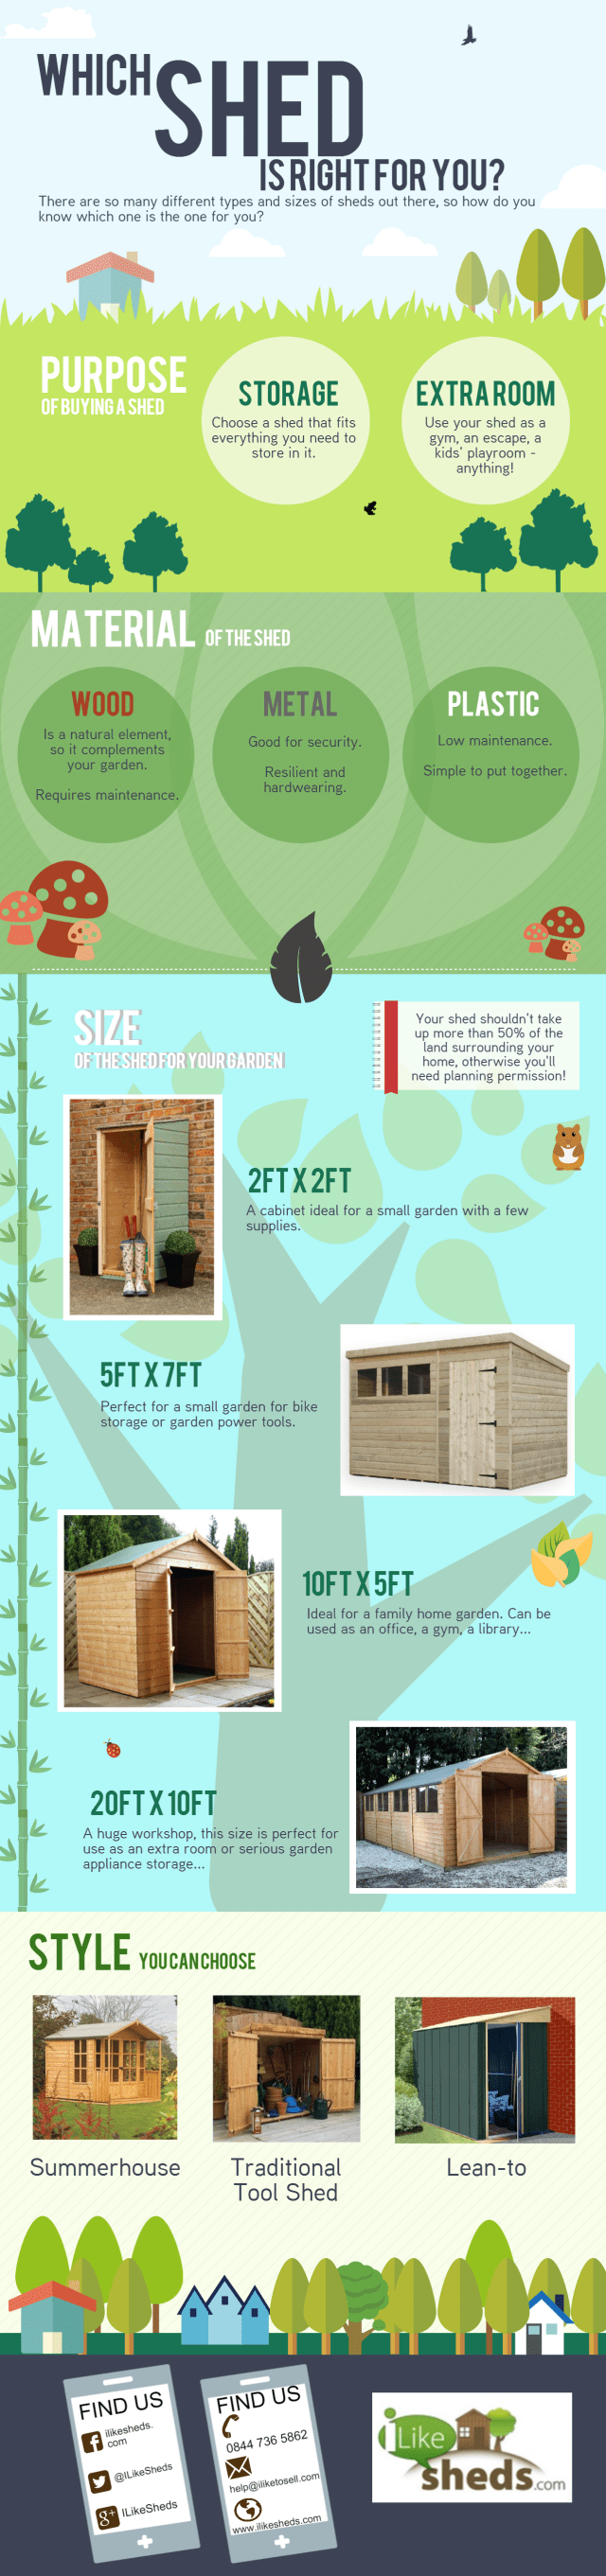 ILikeSheds Which Shed